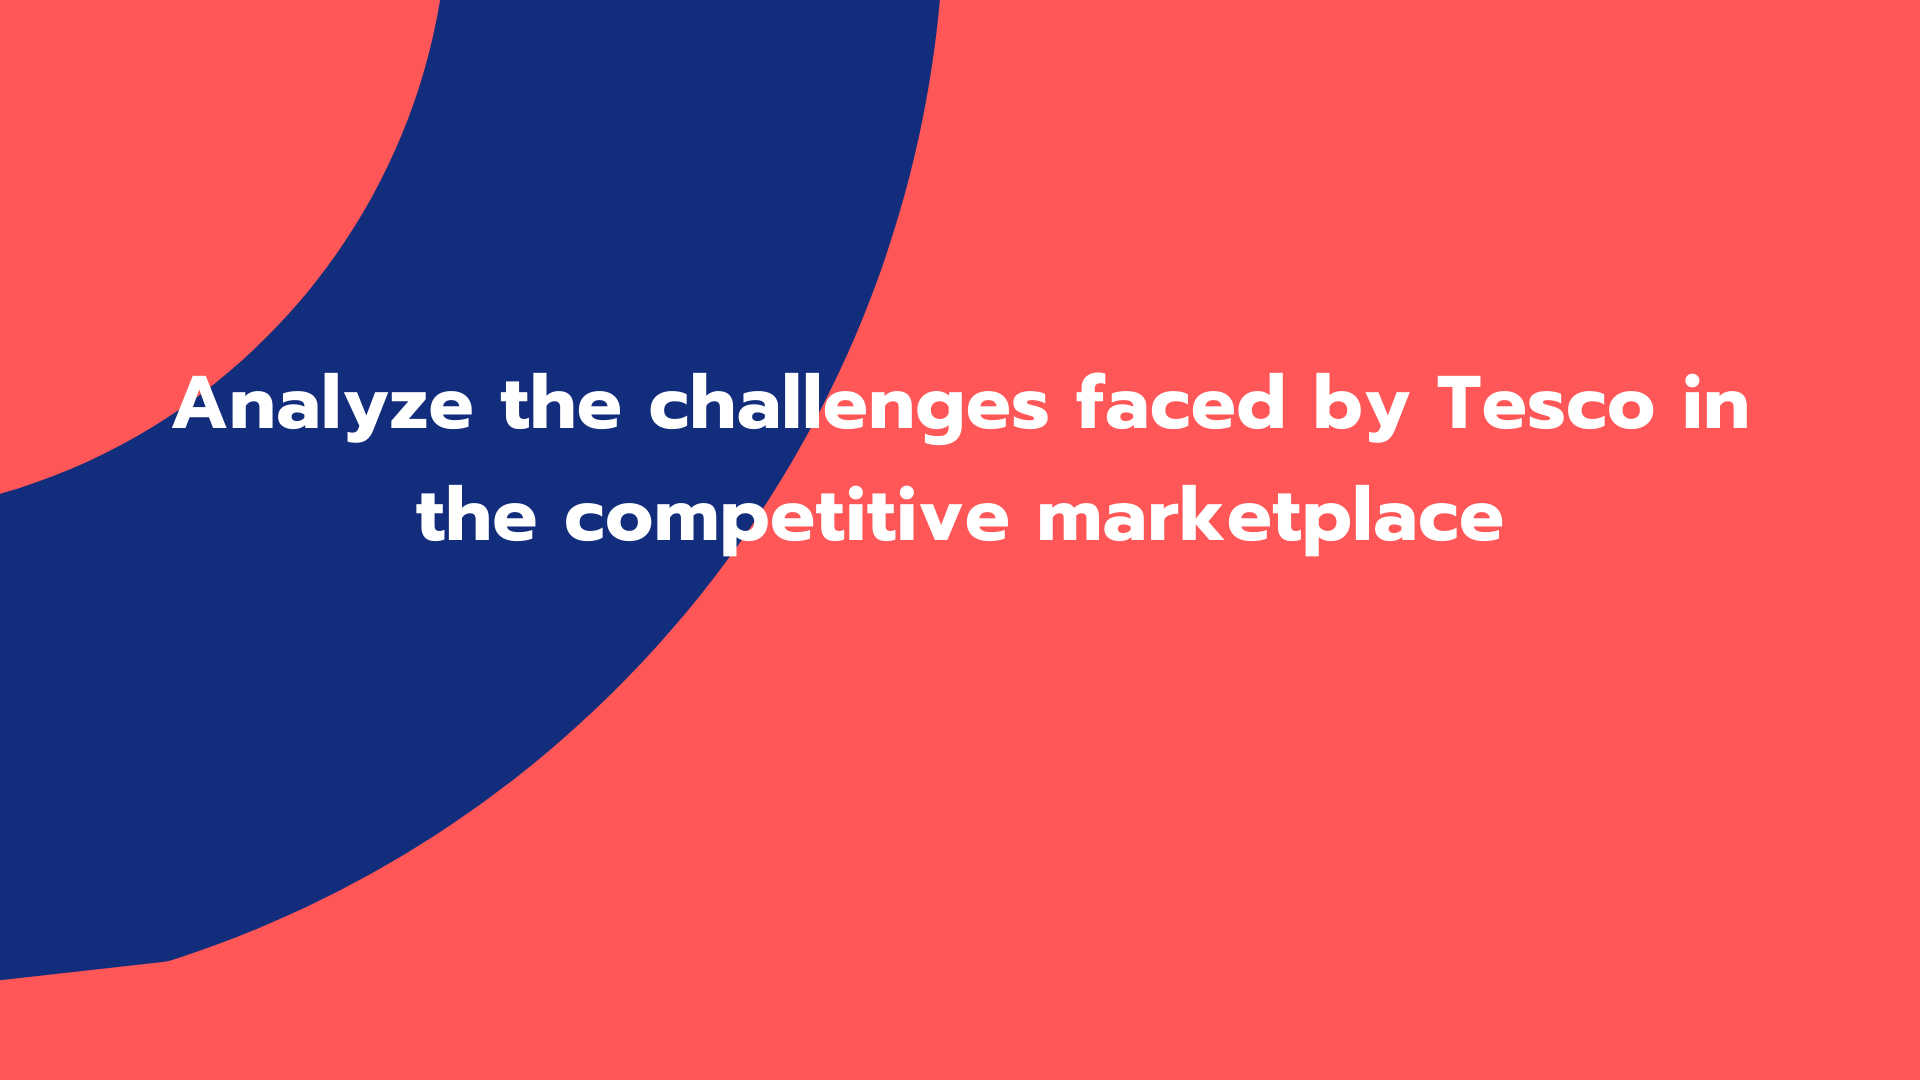 Analyze the challenges faced by Tesco in the competitive marketplace